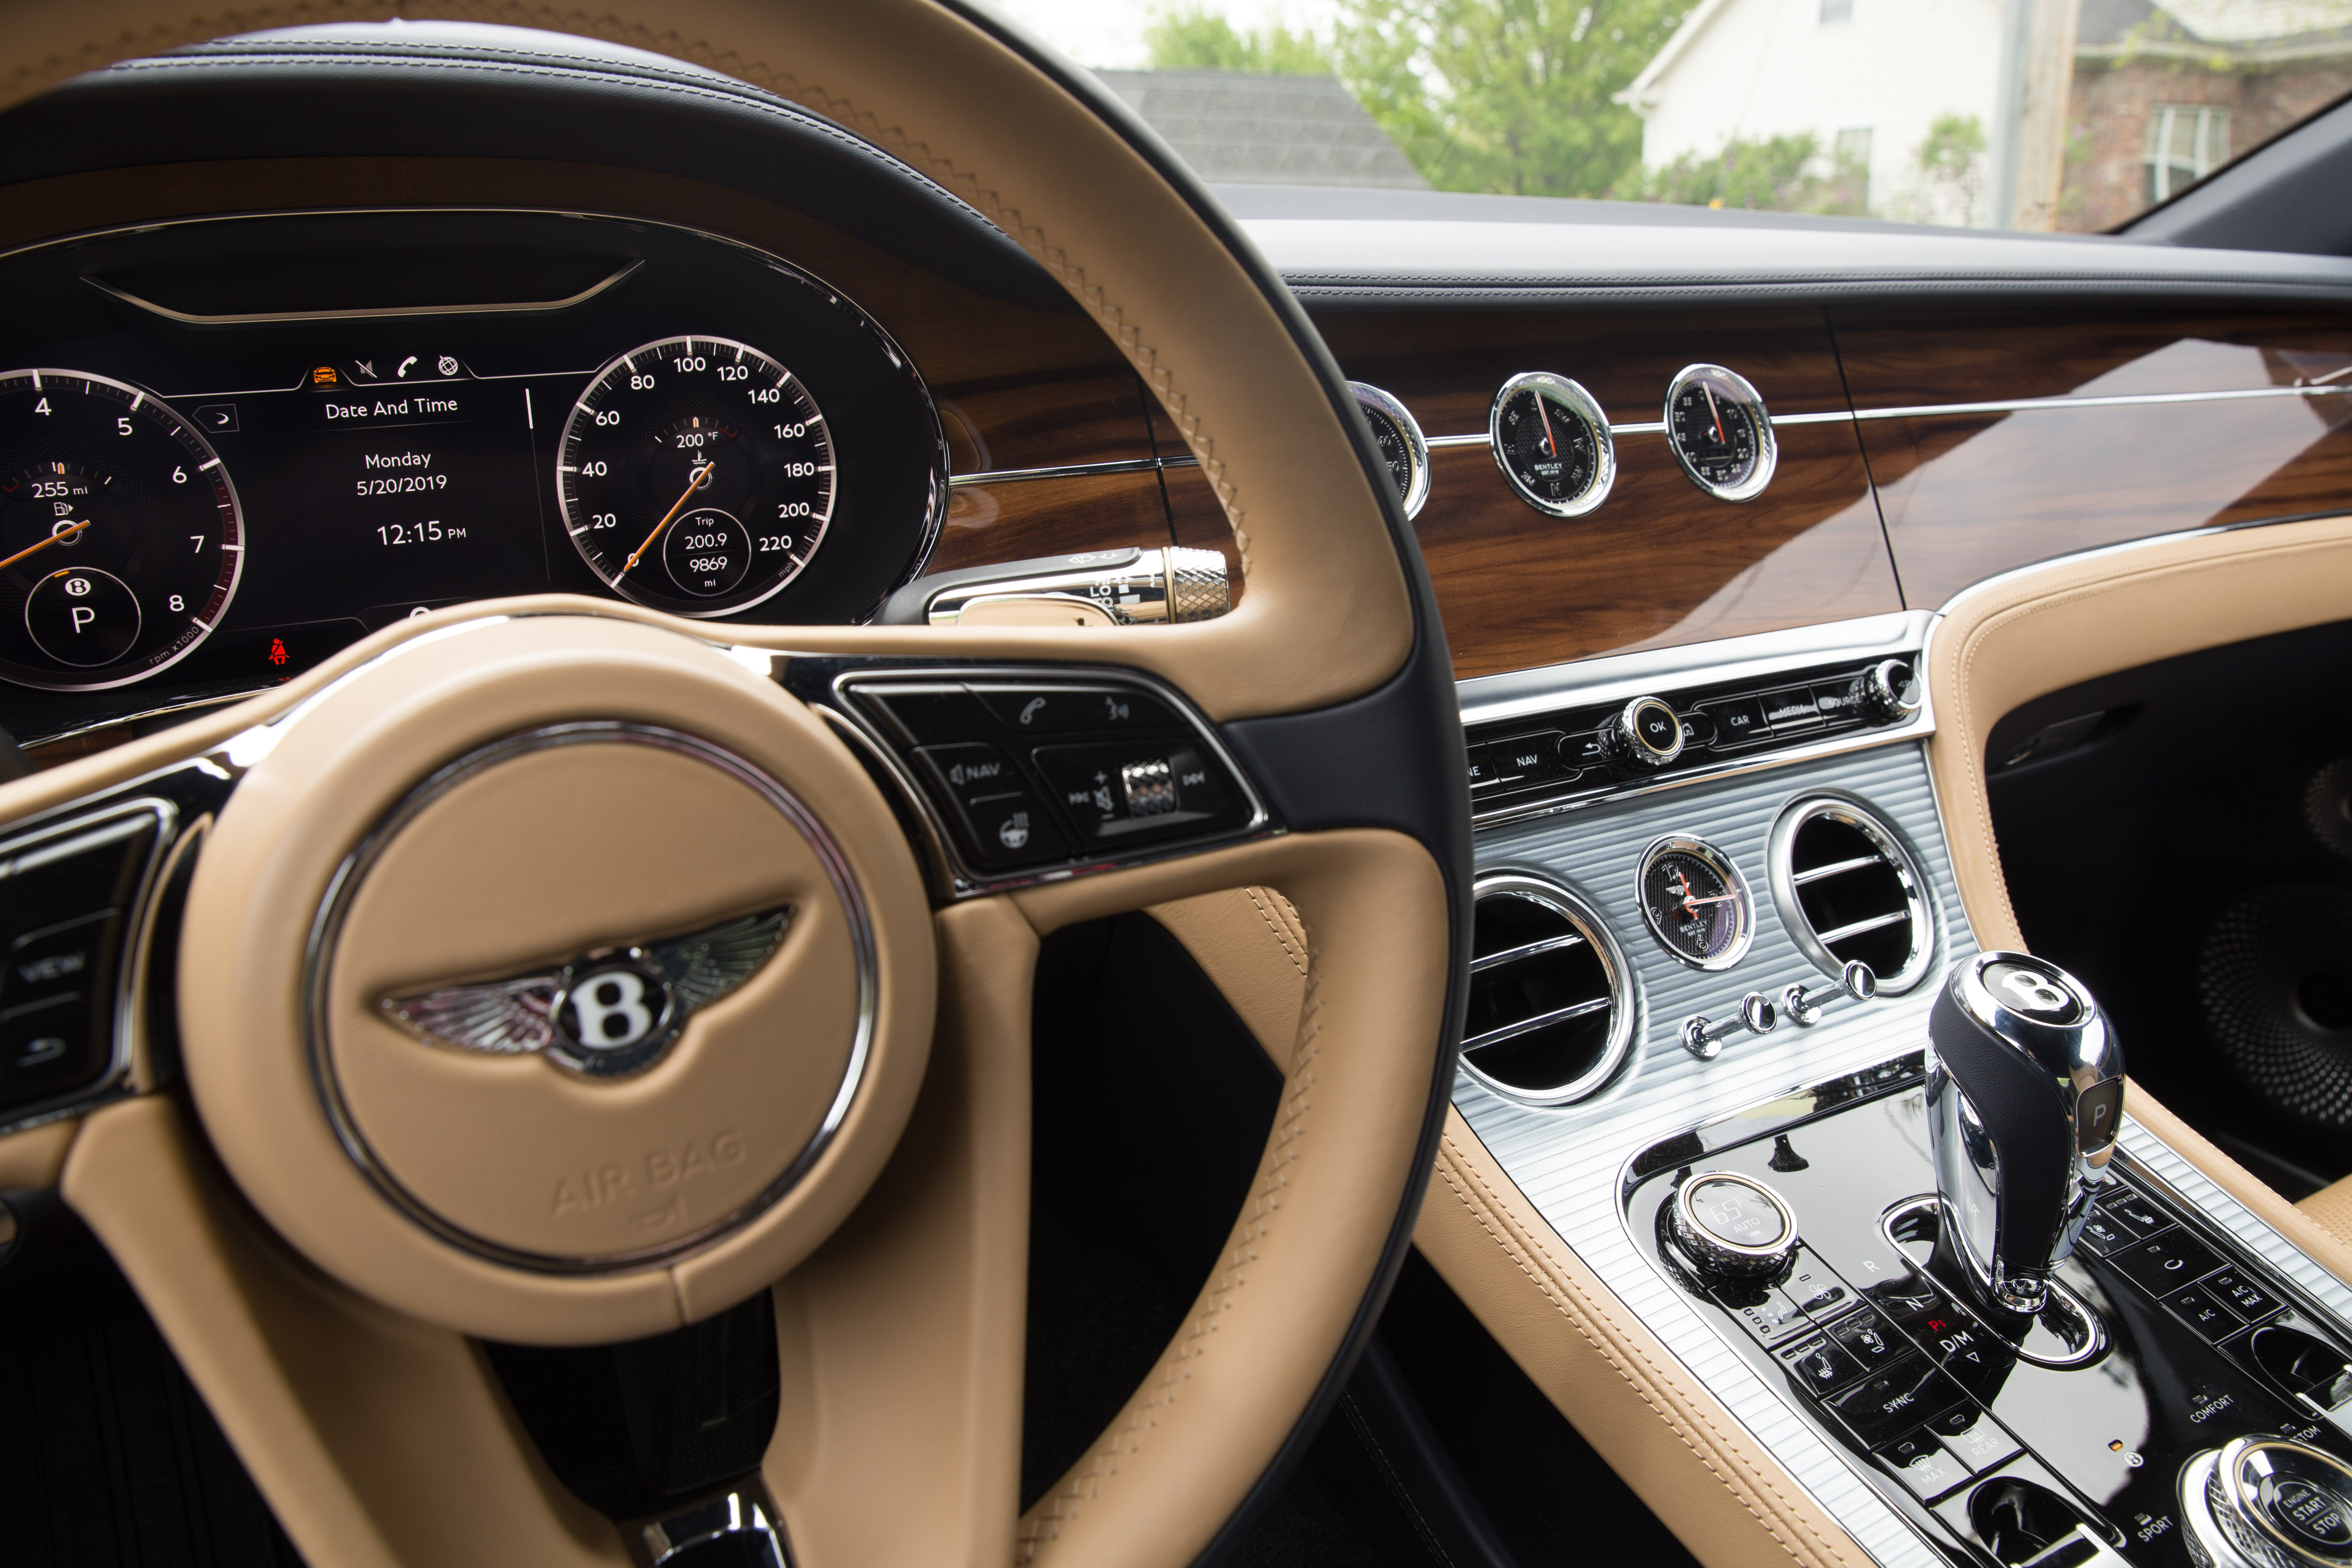 Review: The 2019 Bentley Continental GT is beautiful, excessive and totally worth it